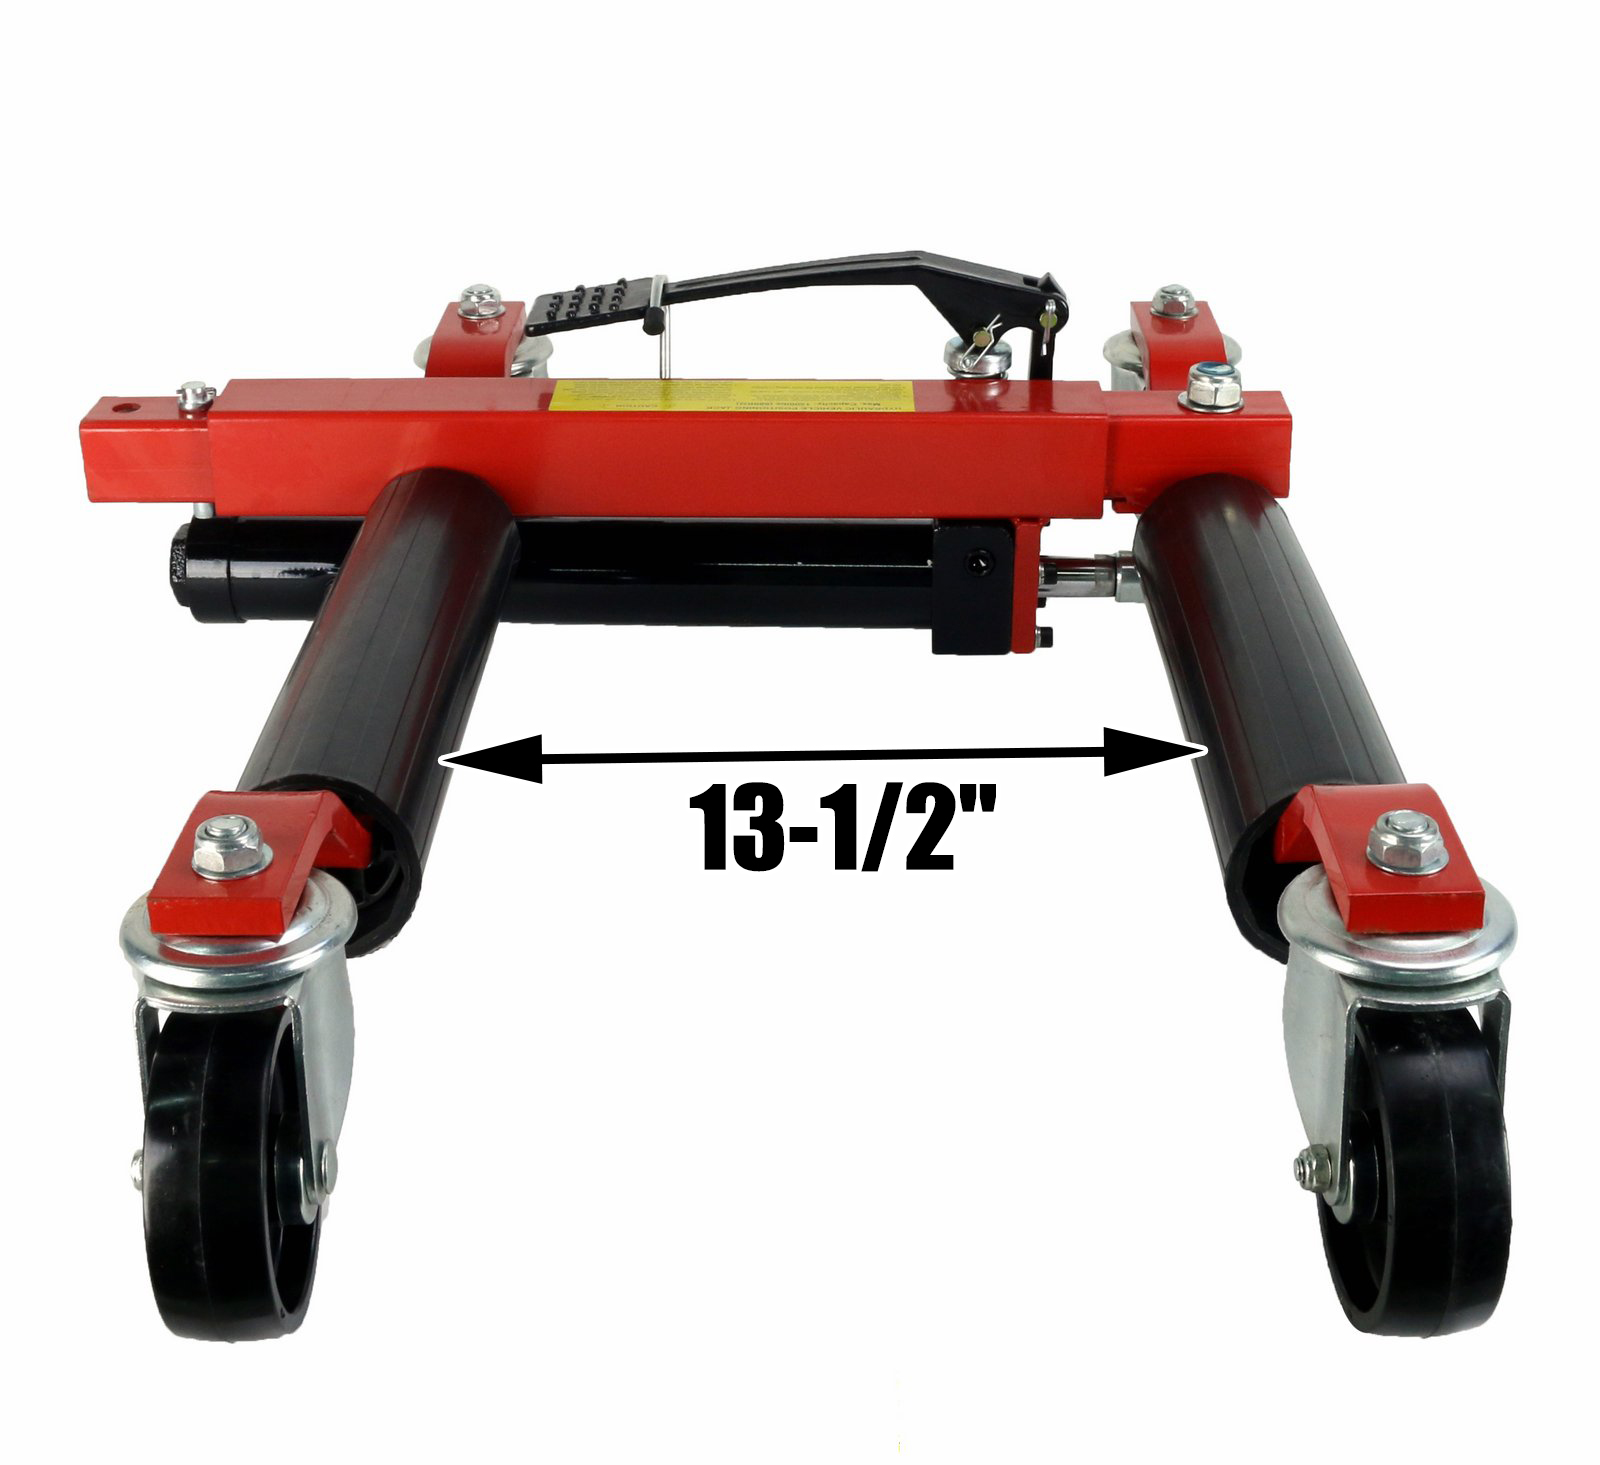 Two wheel car dolly for sale how do i get a black license plate